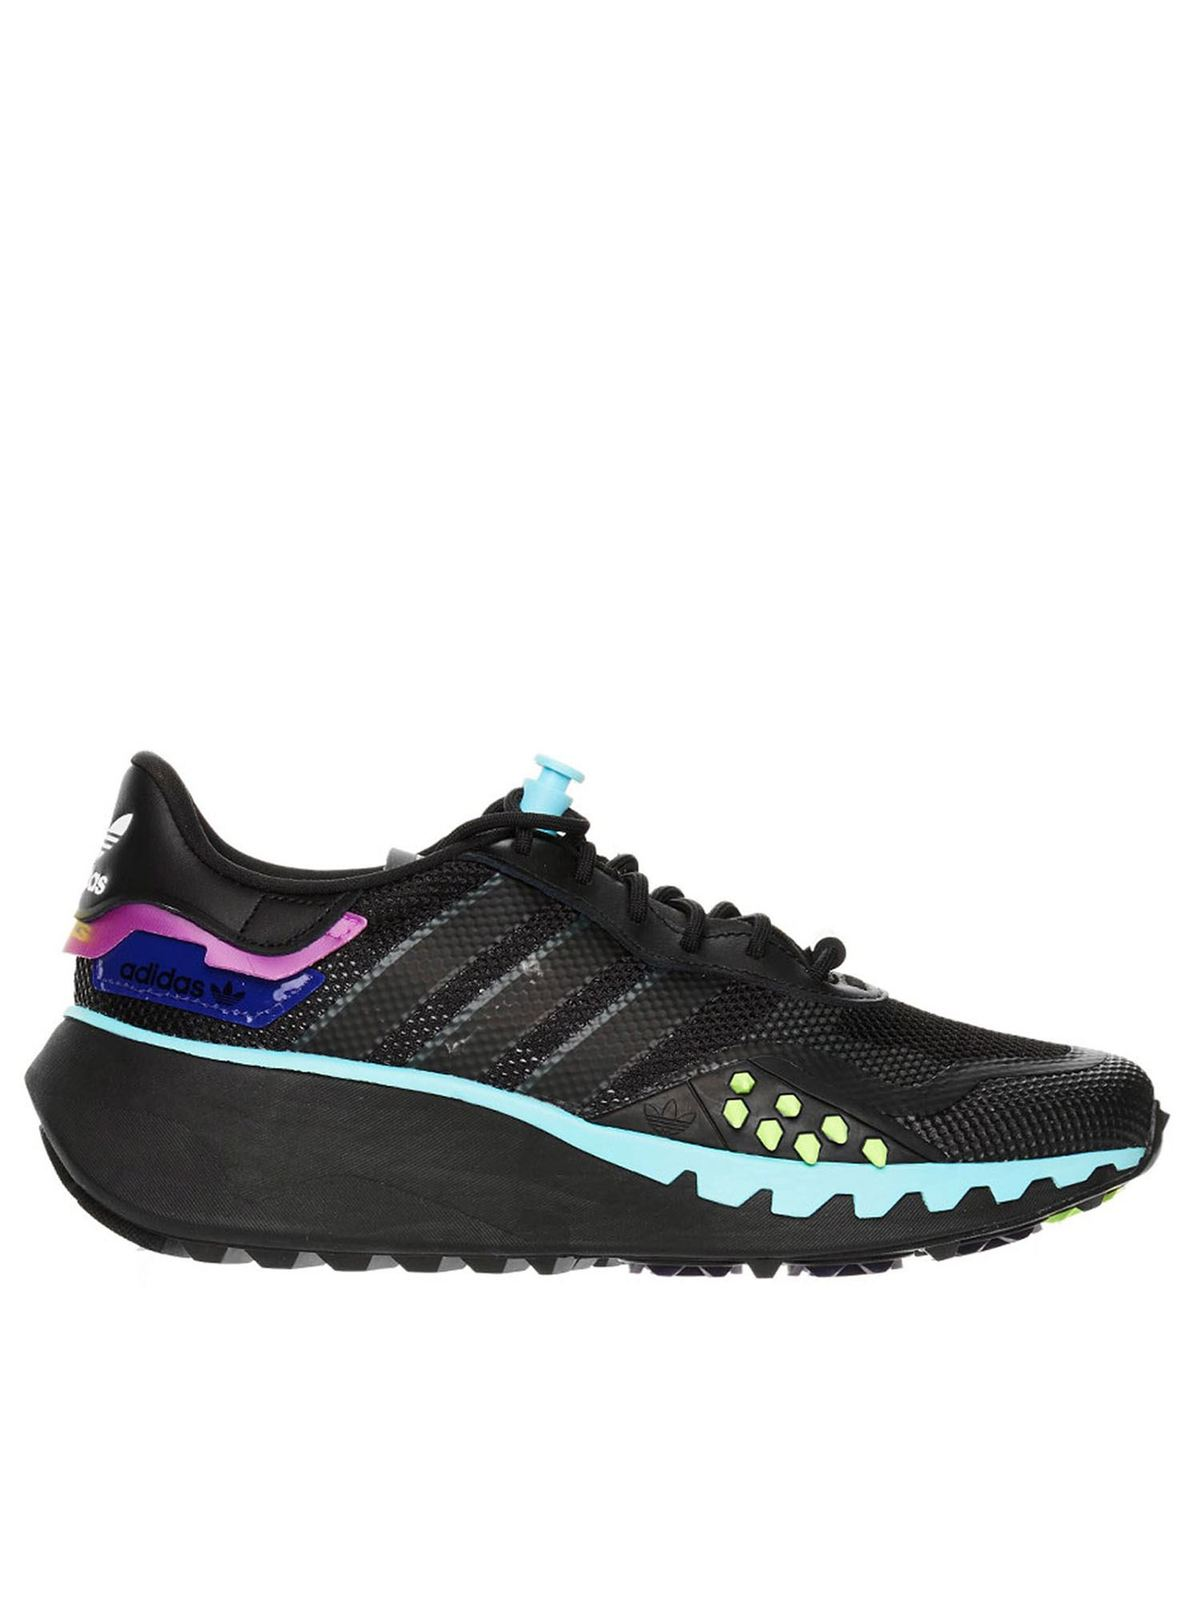 Adidas Originals CHOIGO SNEAKERS IN BLACK